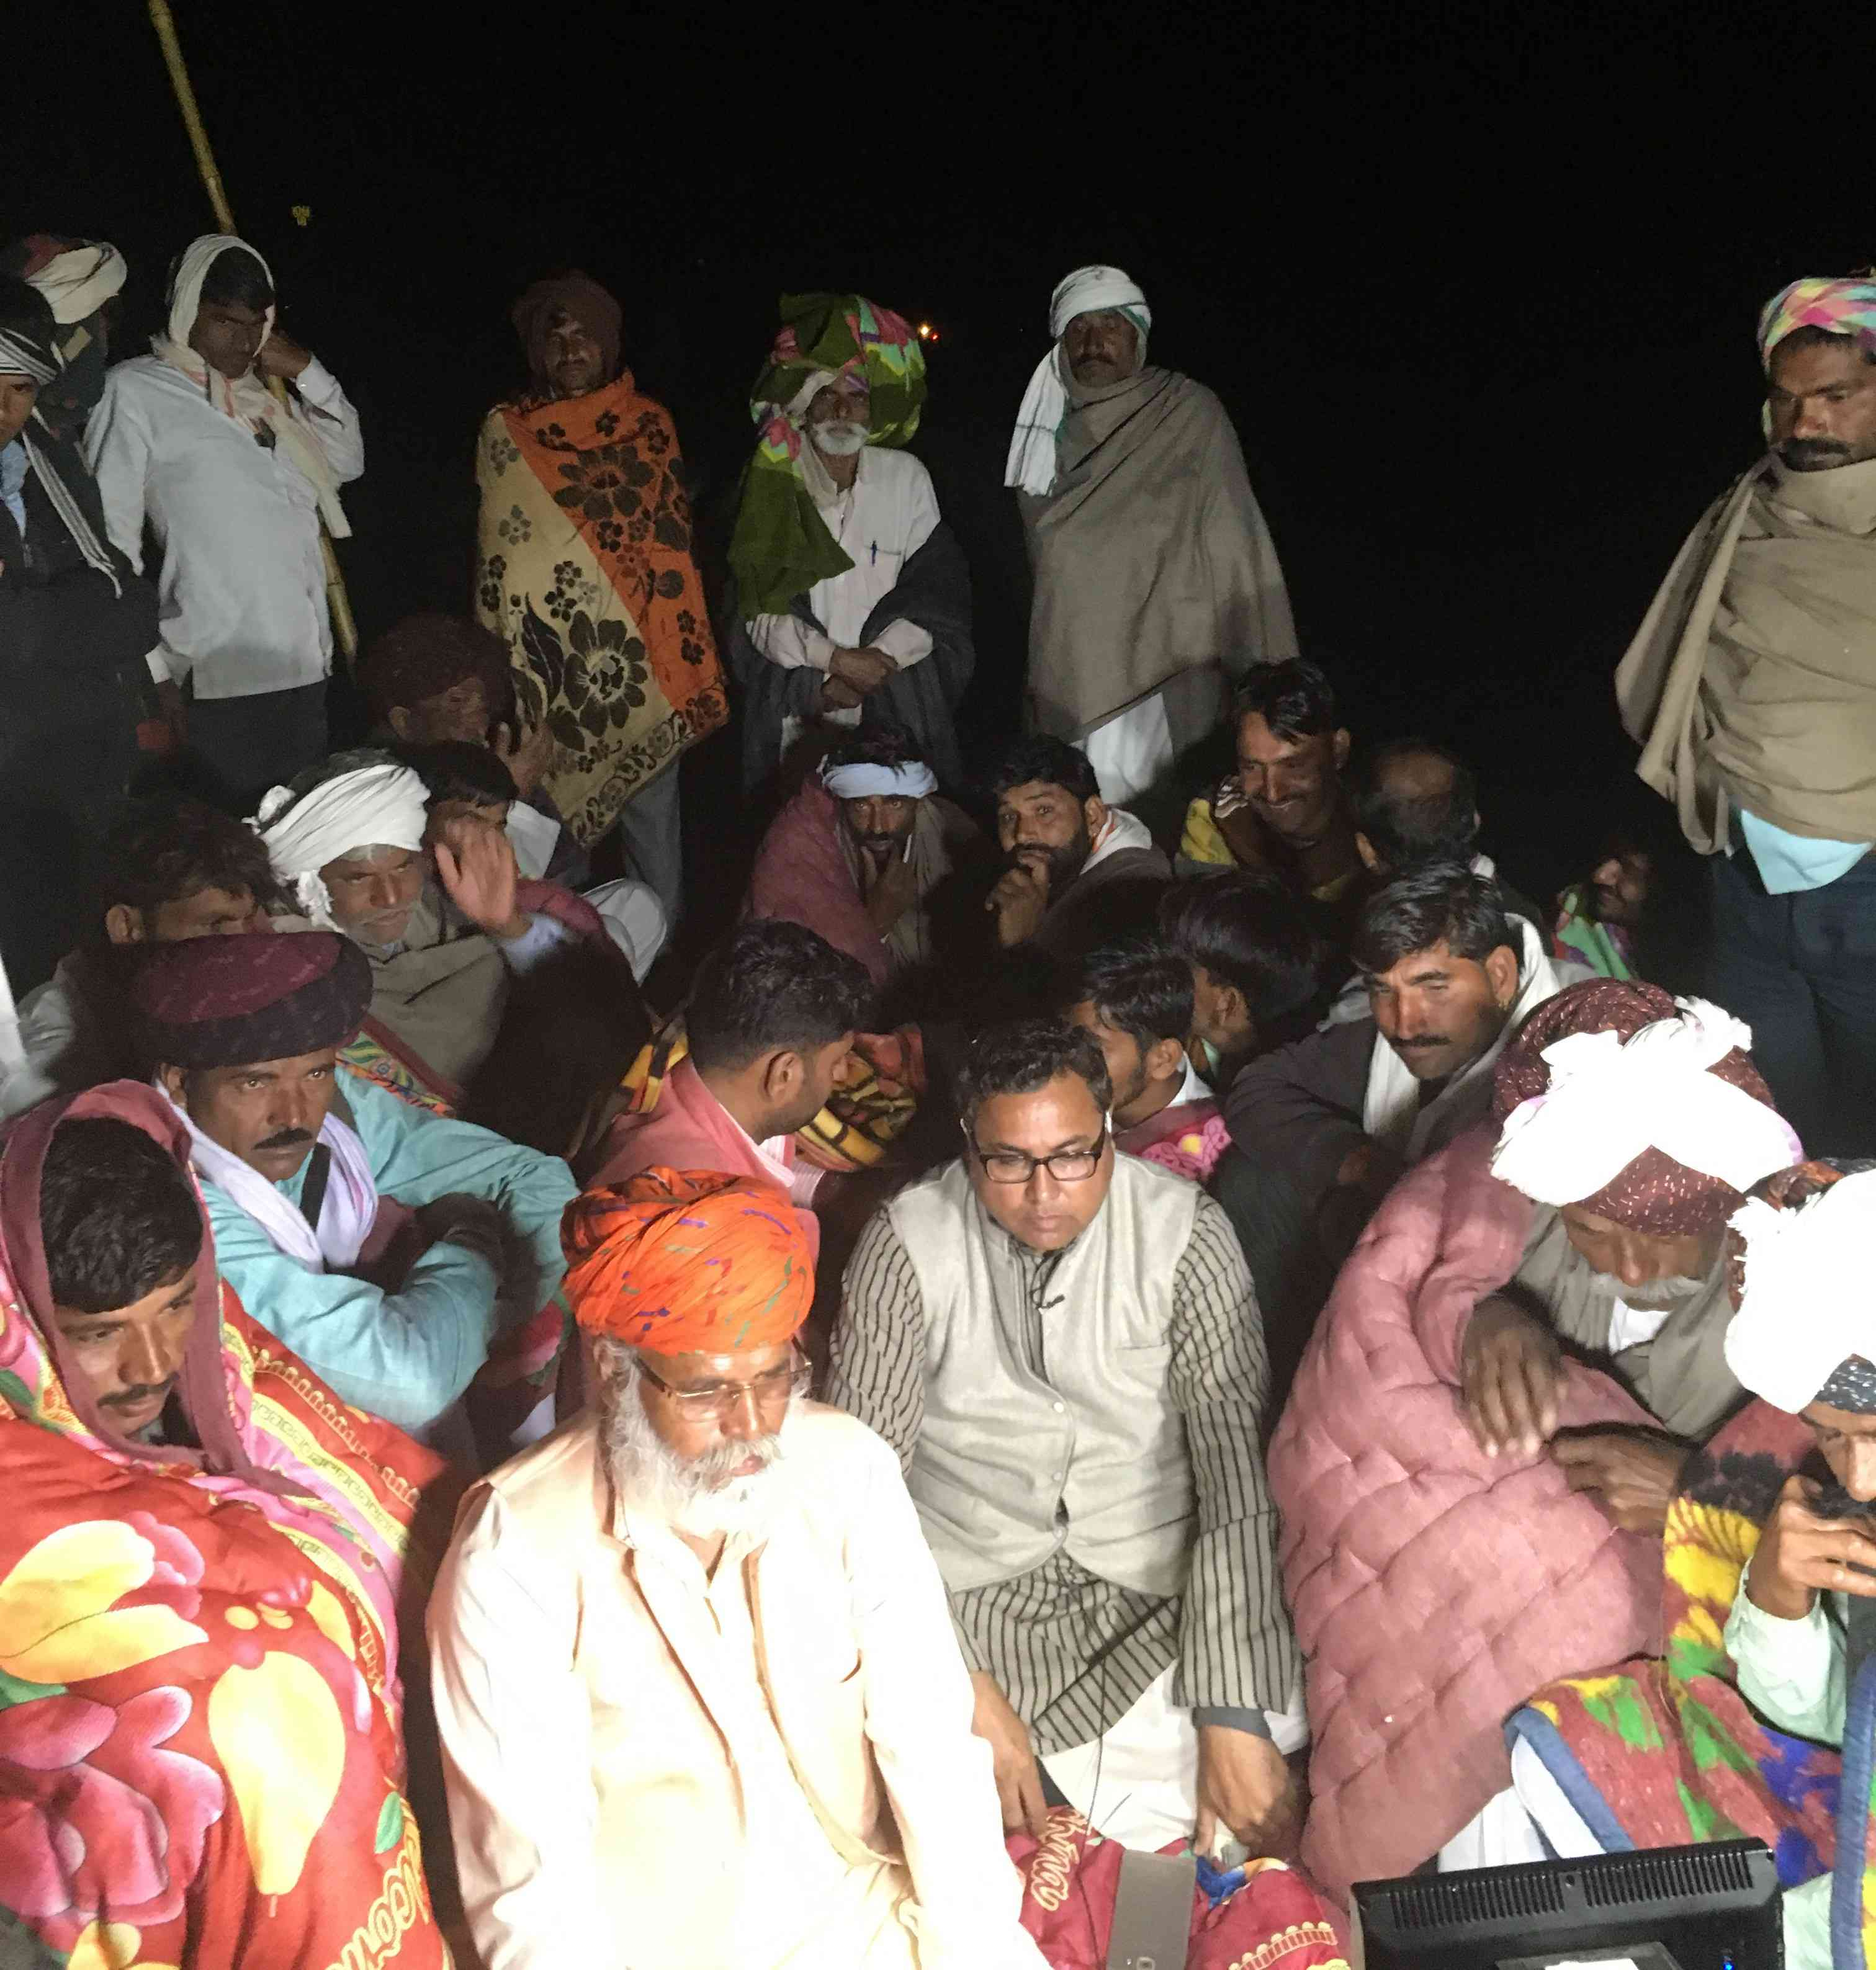 Gujjar protestors near Malarna station in Rajasthan's Sawai Madhopur. Photo credit: Akash Bisht